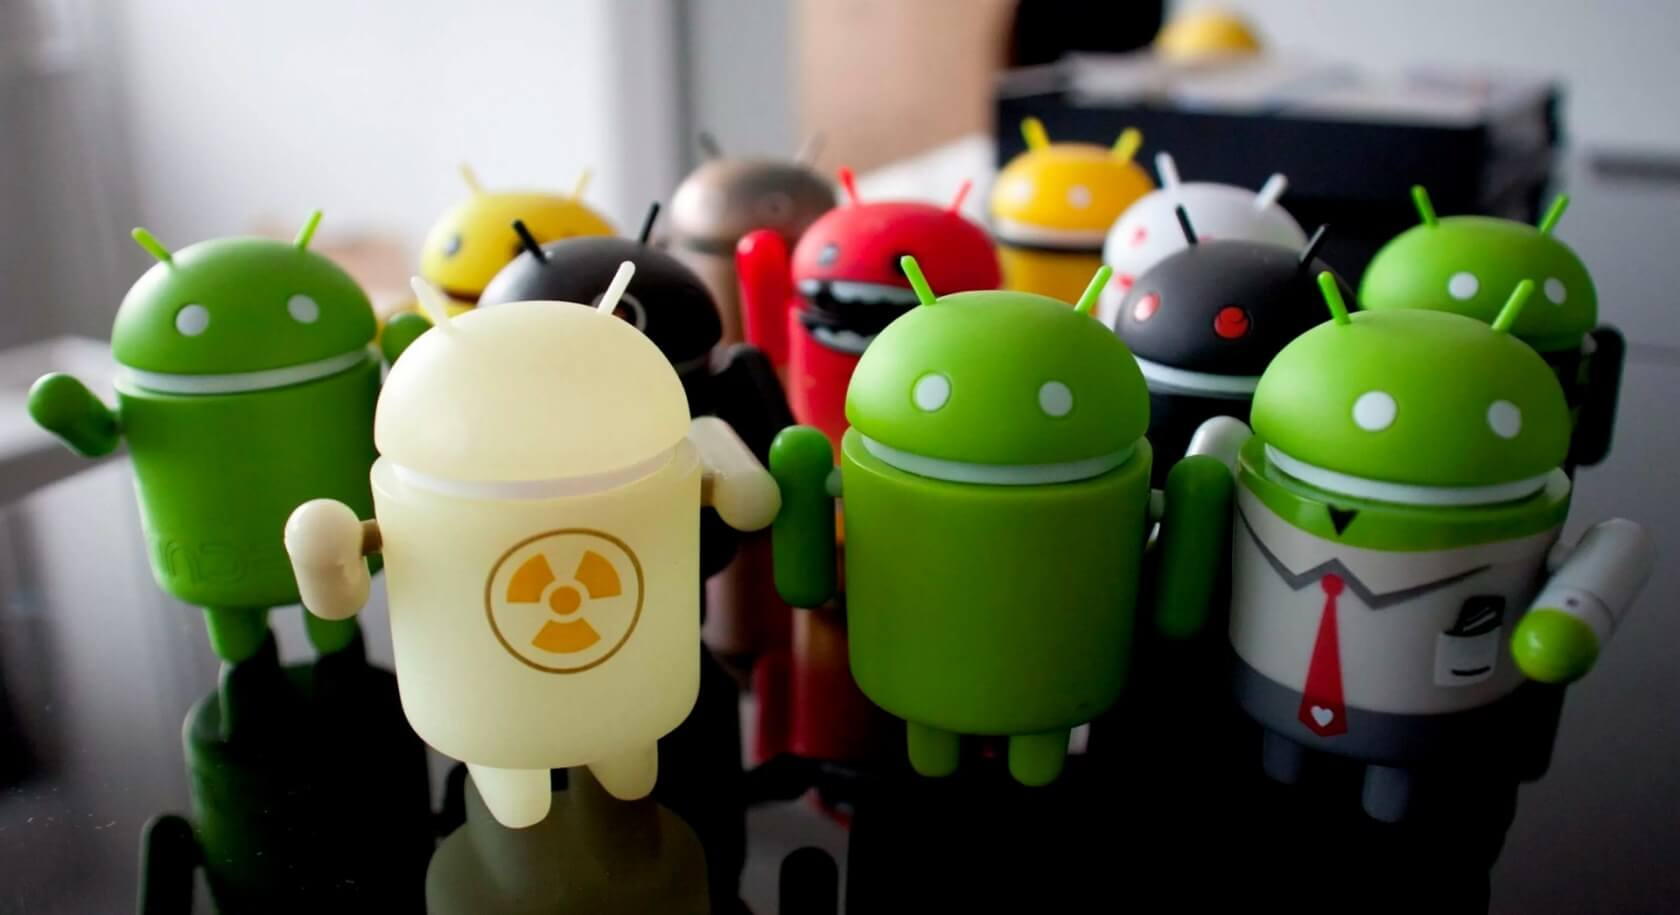 Google rolls out five new Android upgrades ahead of Android 11's launch